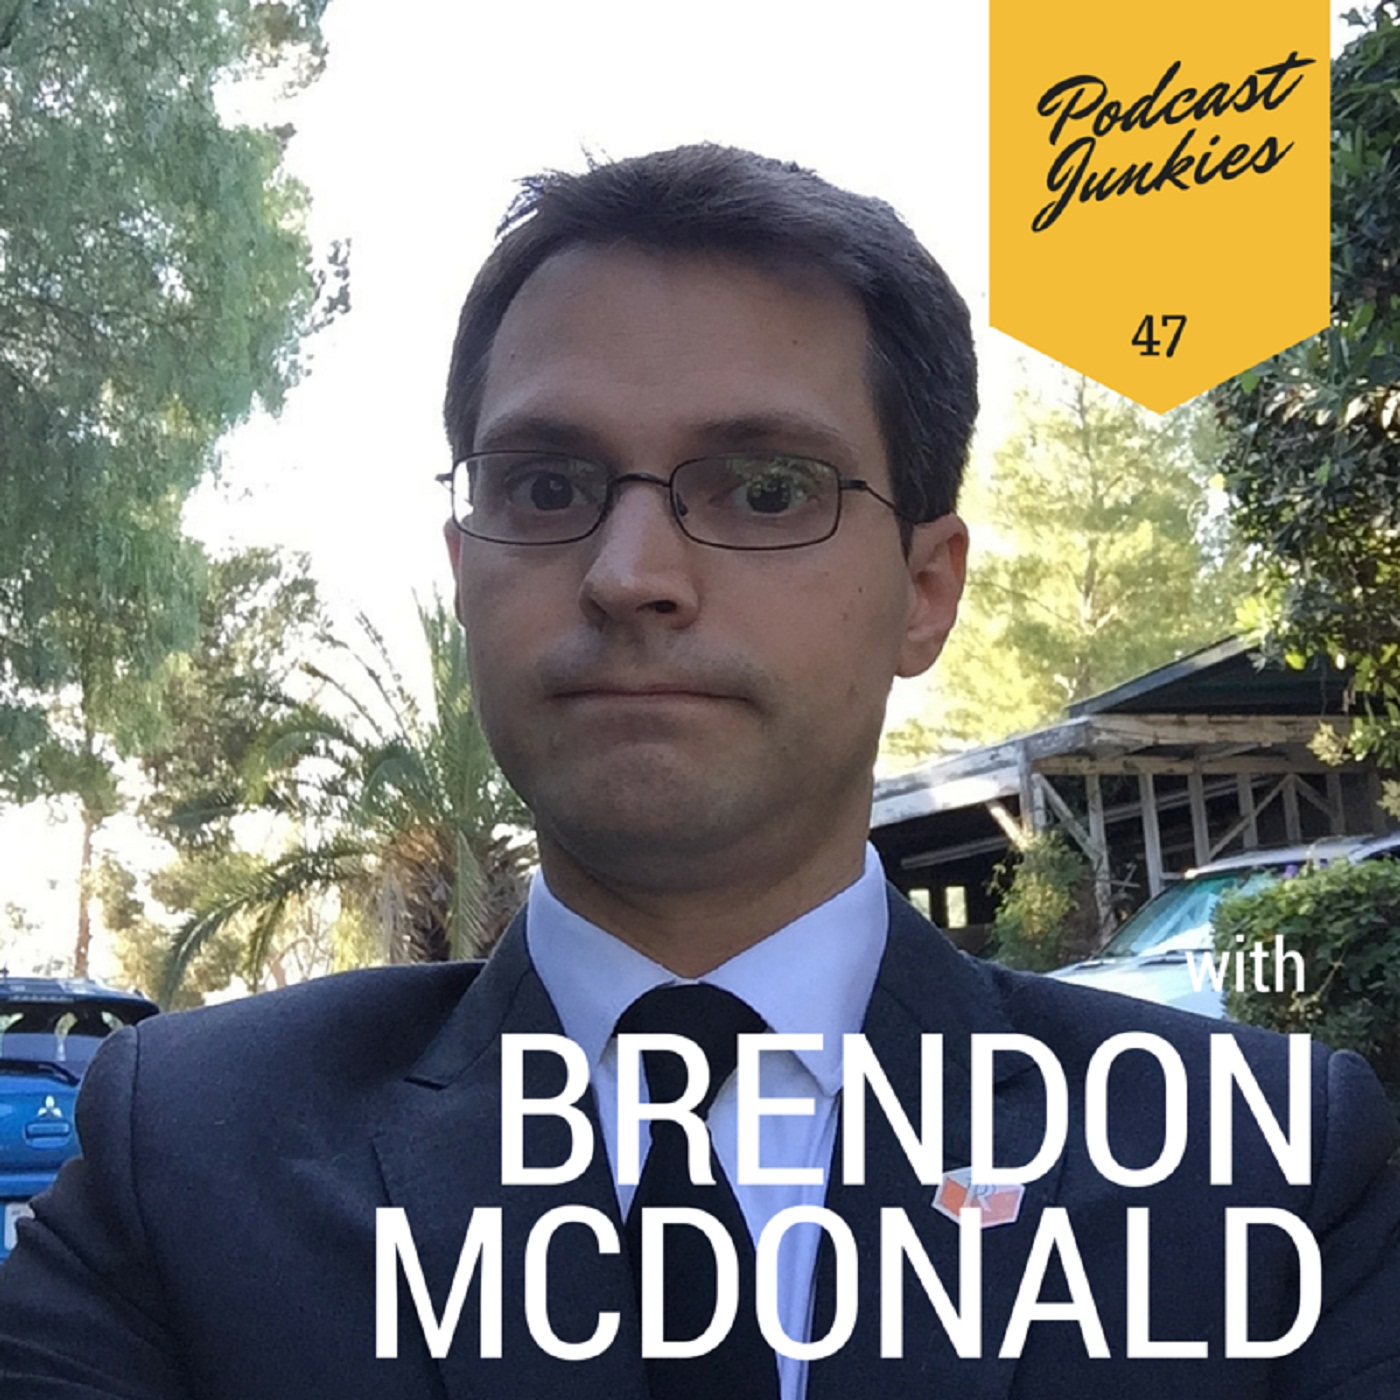 047 Brendan McDonald | An Interview 10 Years In The Making